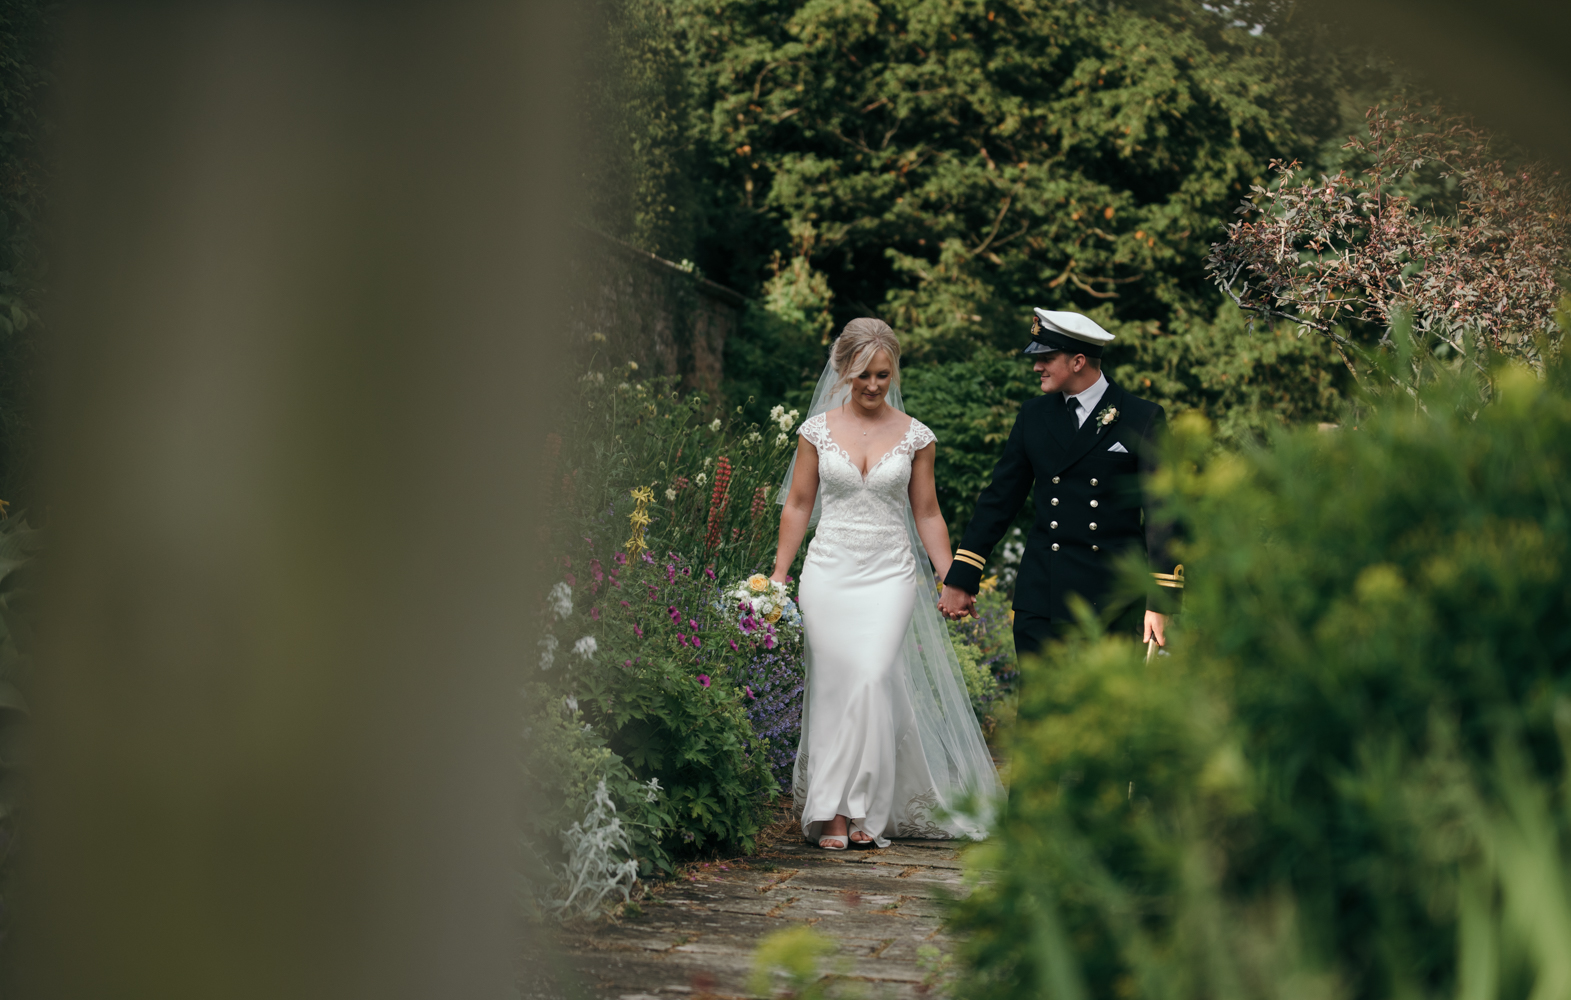 The bride and groom walking in the secret garden